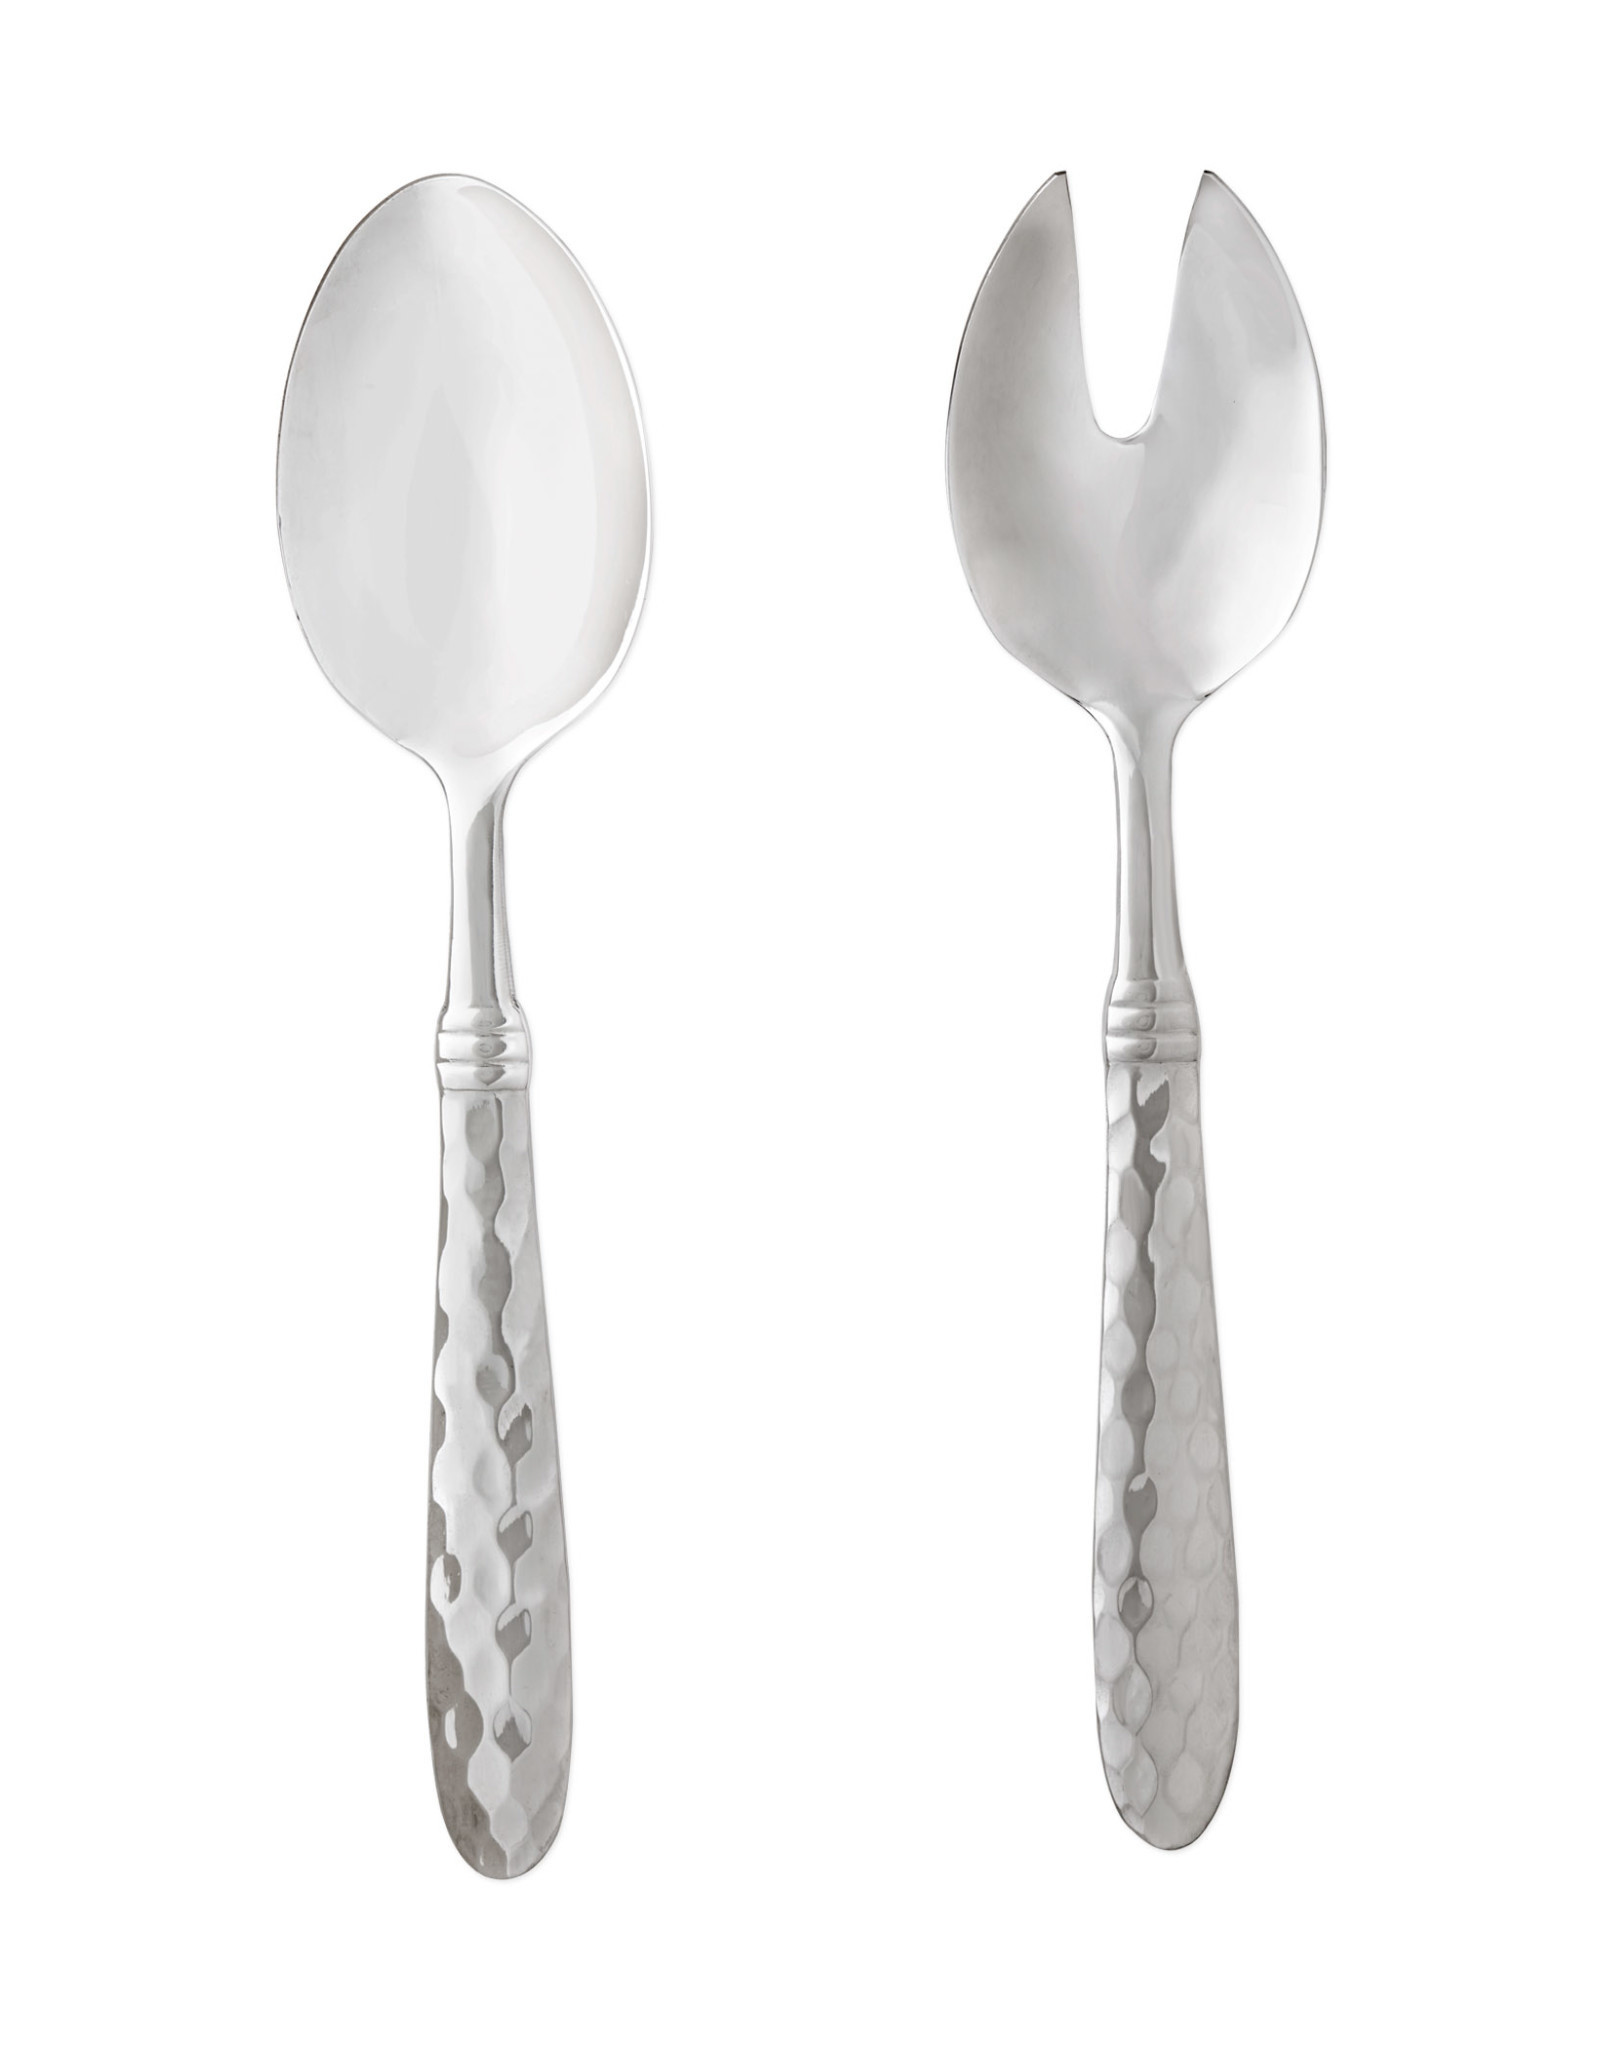 Vietri Martellato Hammered Salad Server Set